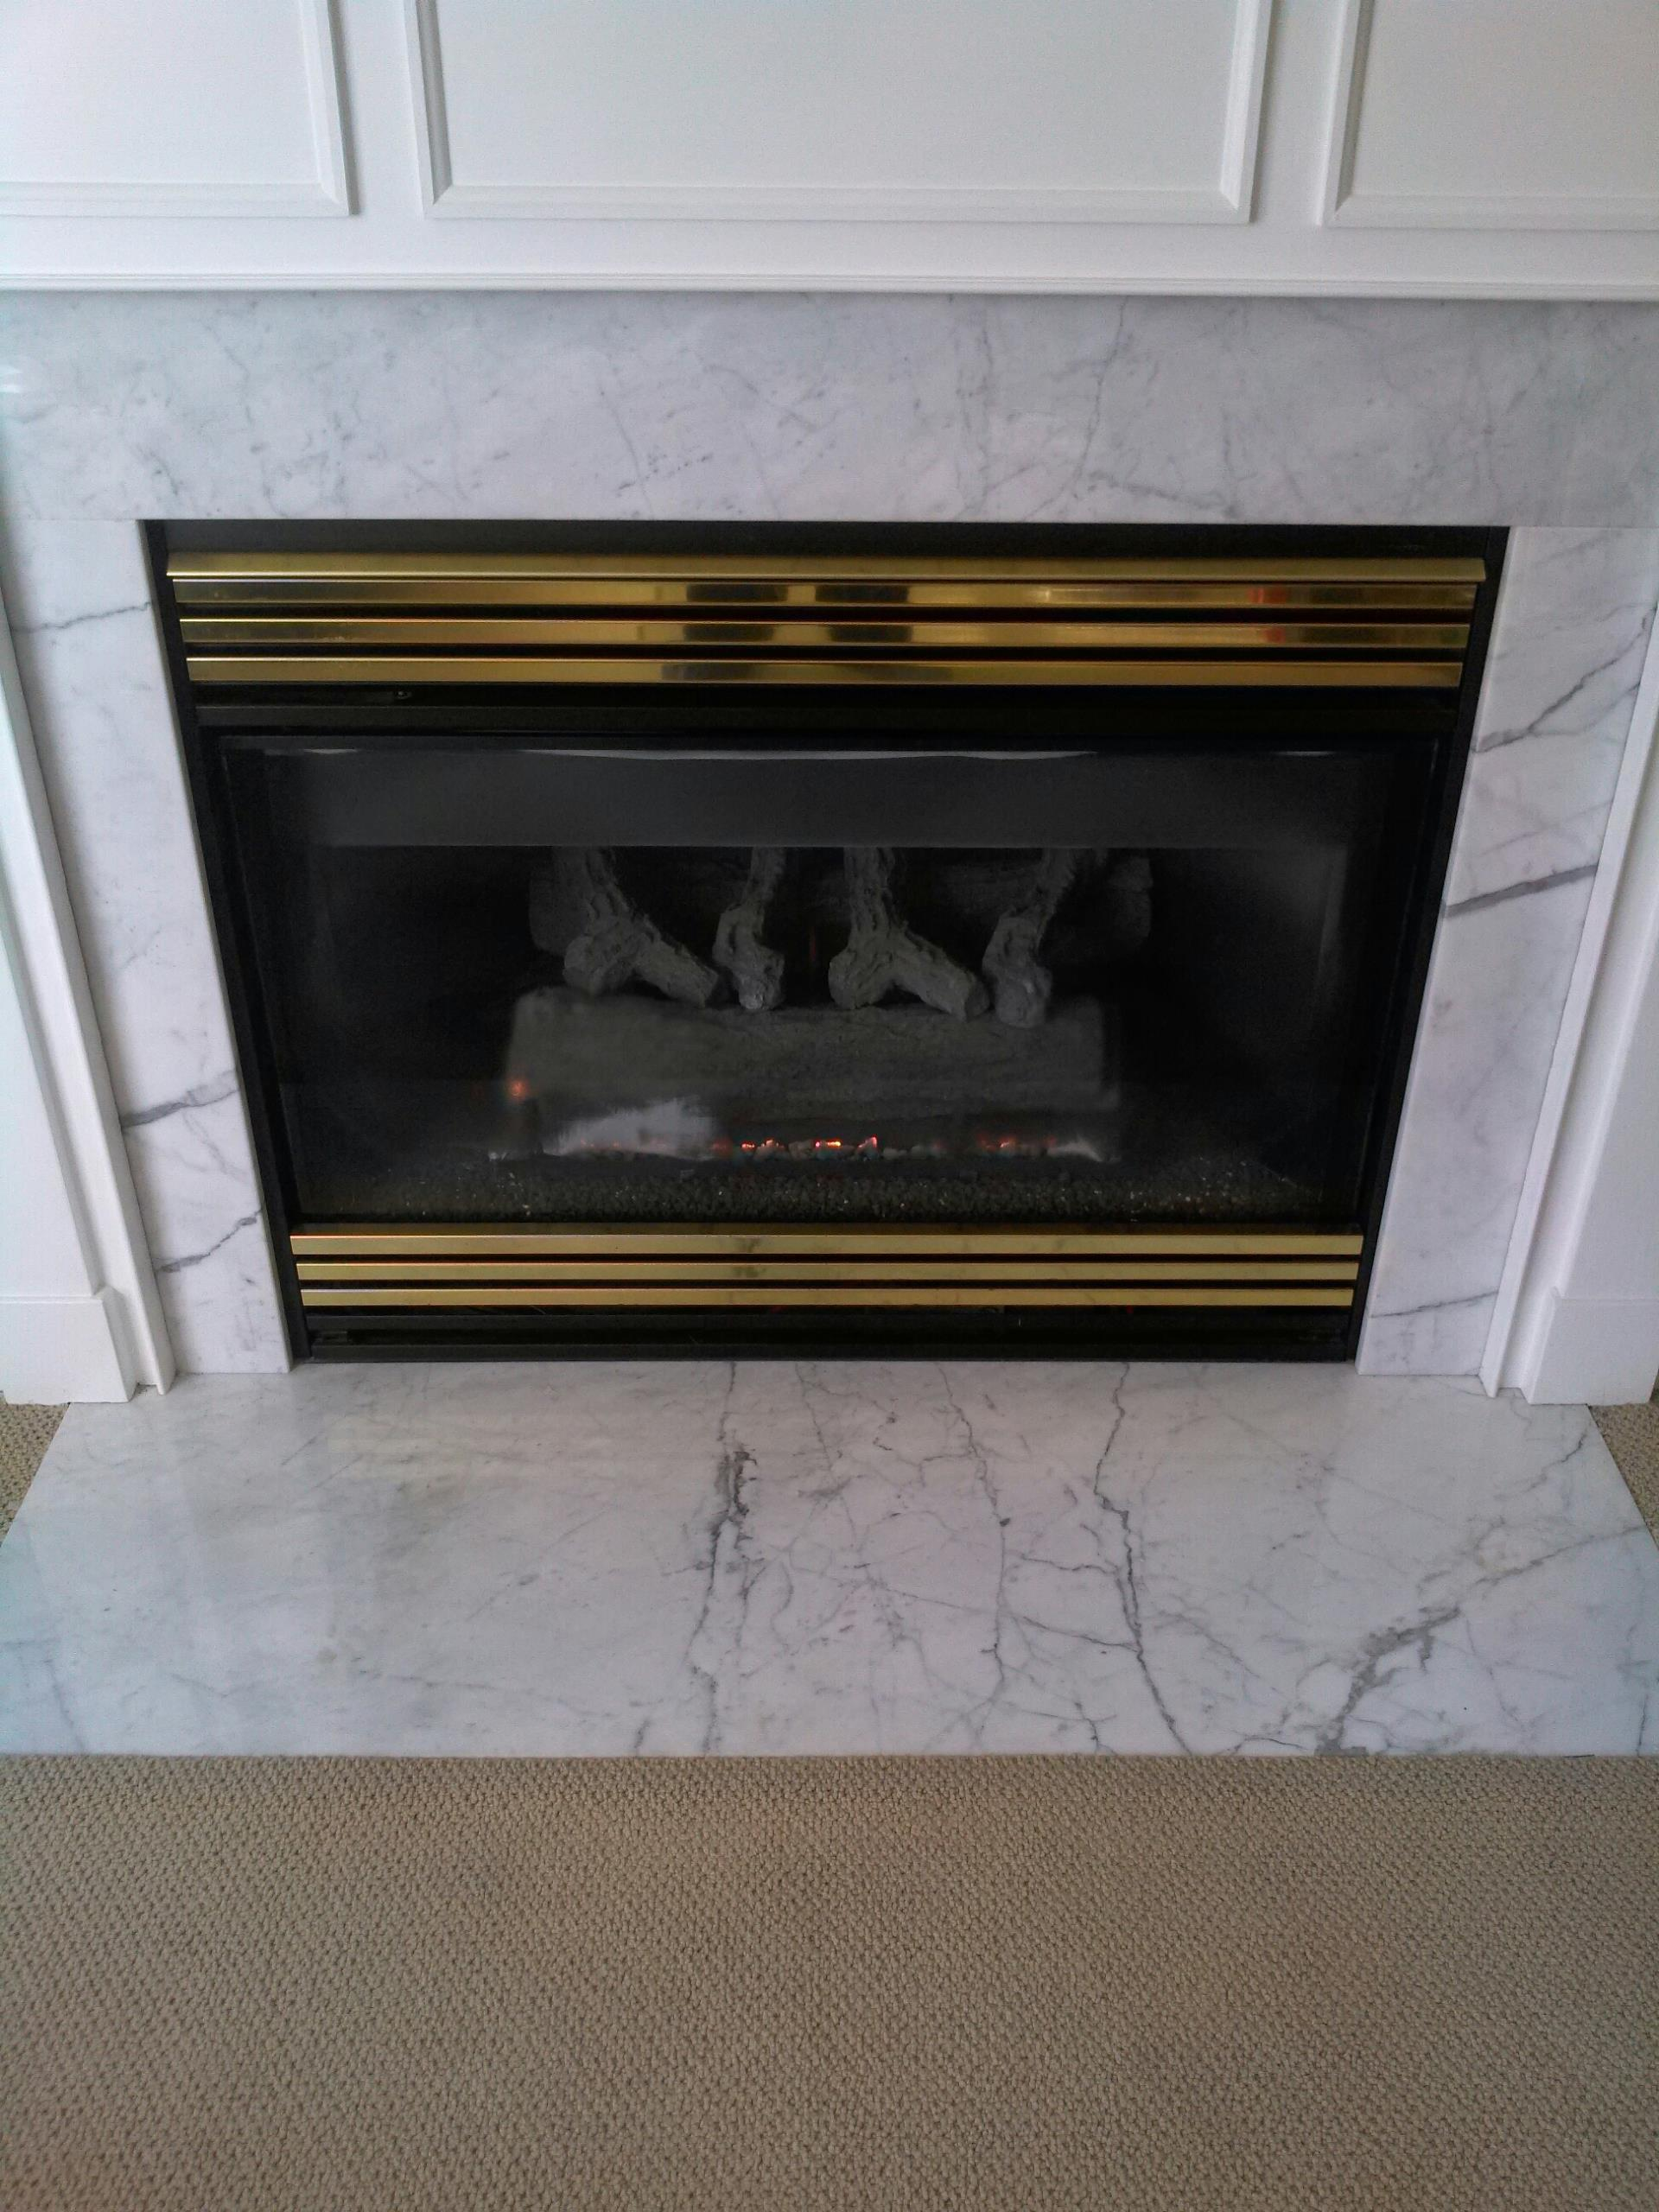 Gambrills, MD - Heat N Glo gas fireplace insert & gas logs installation repair service call in Gambrills Maryland 21054.